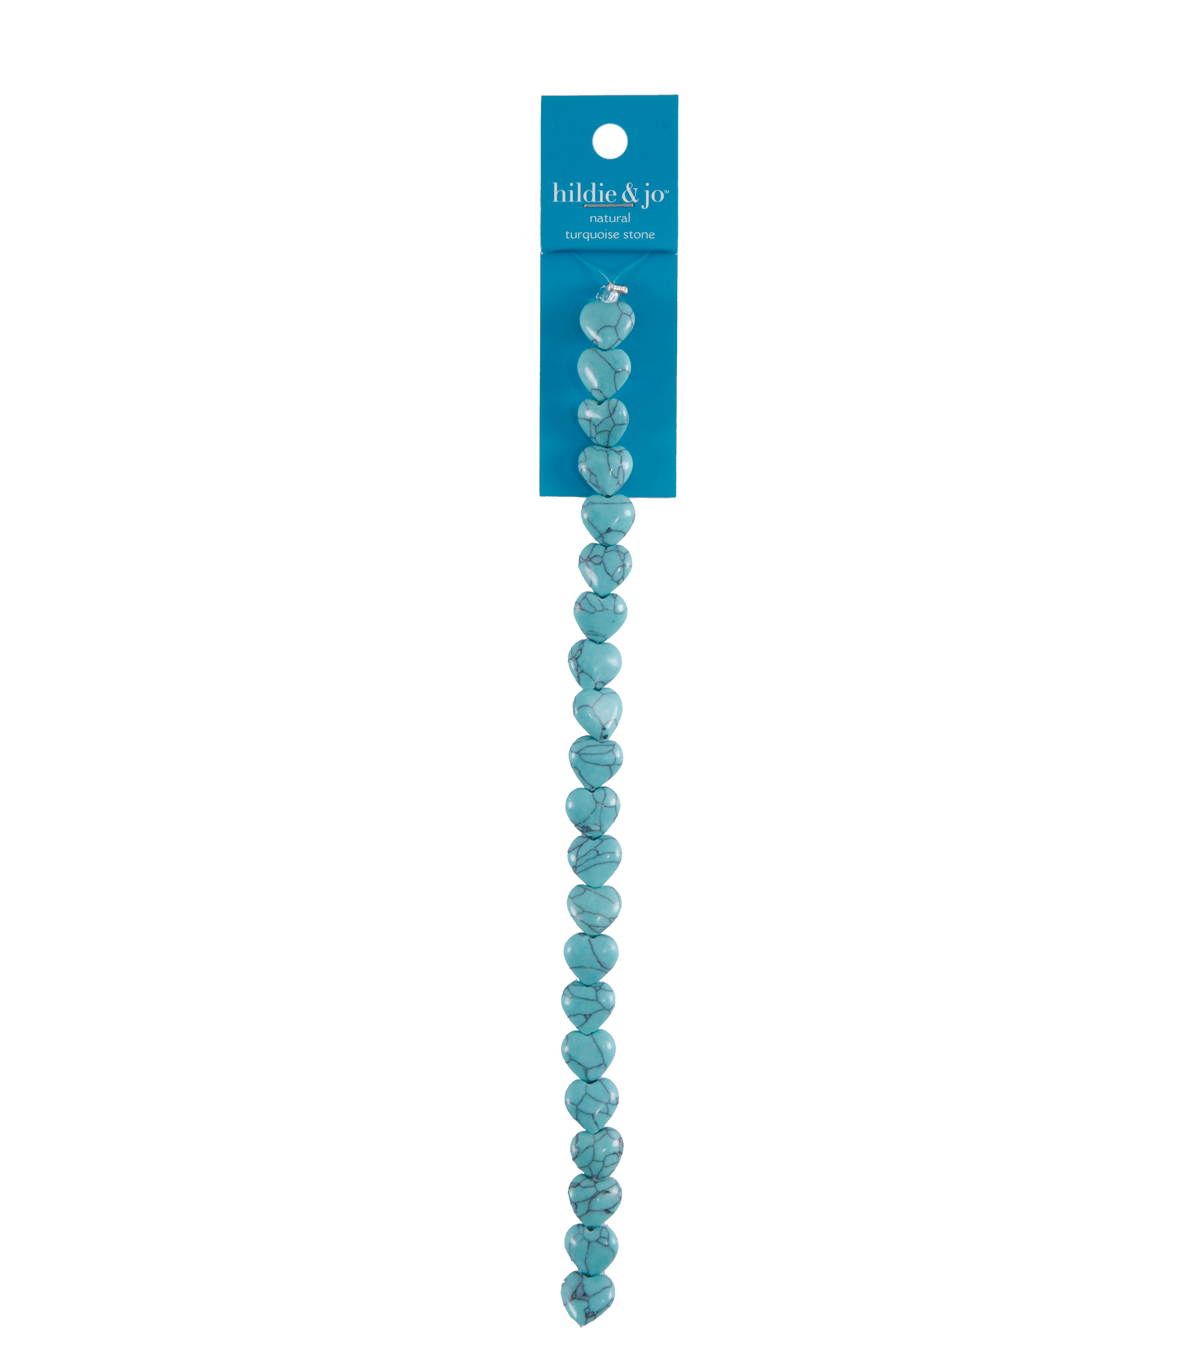 hildie & jo Valentine\u0027s Day Love Natural Turquoise Stone Strung Beads